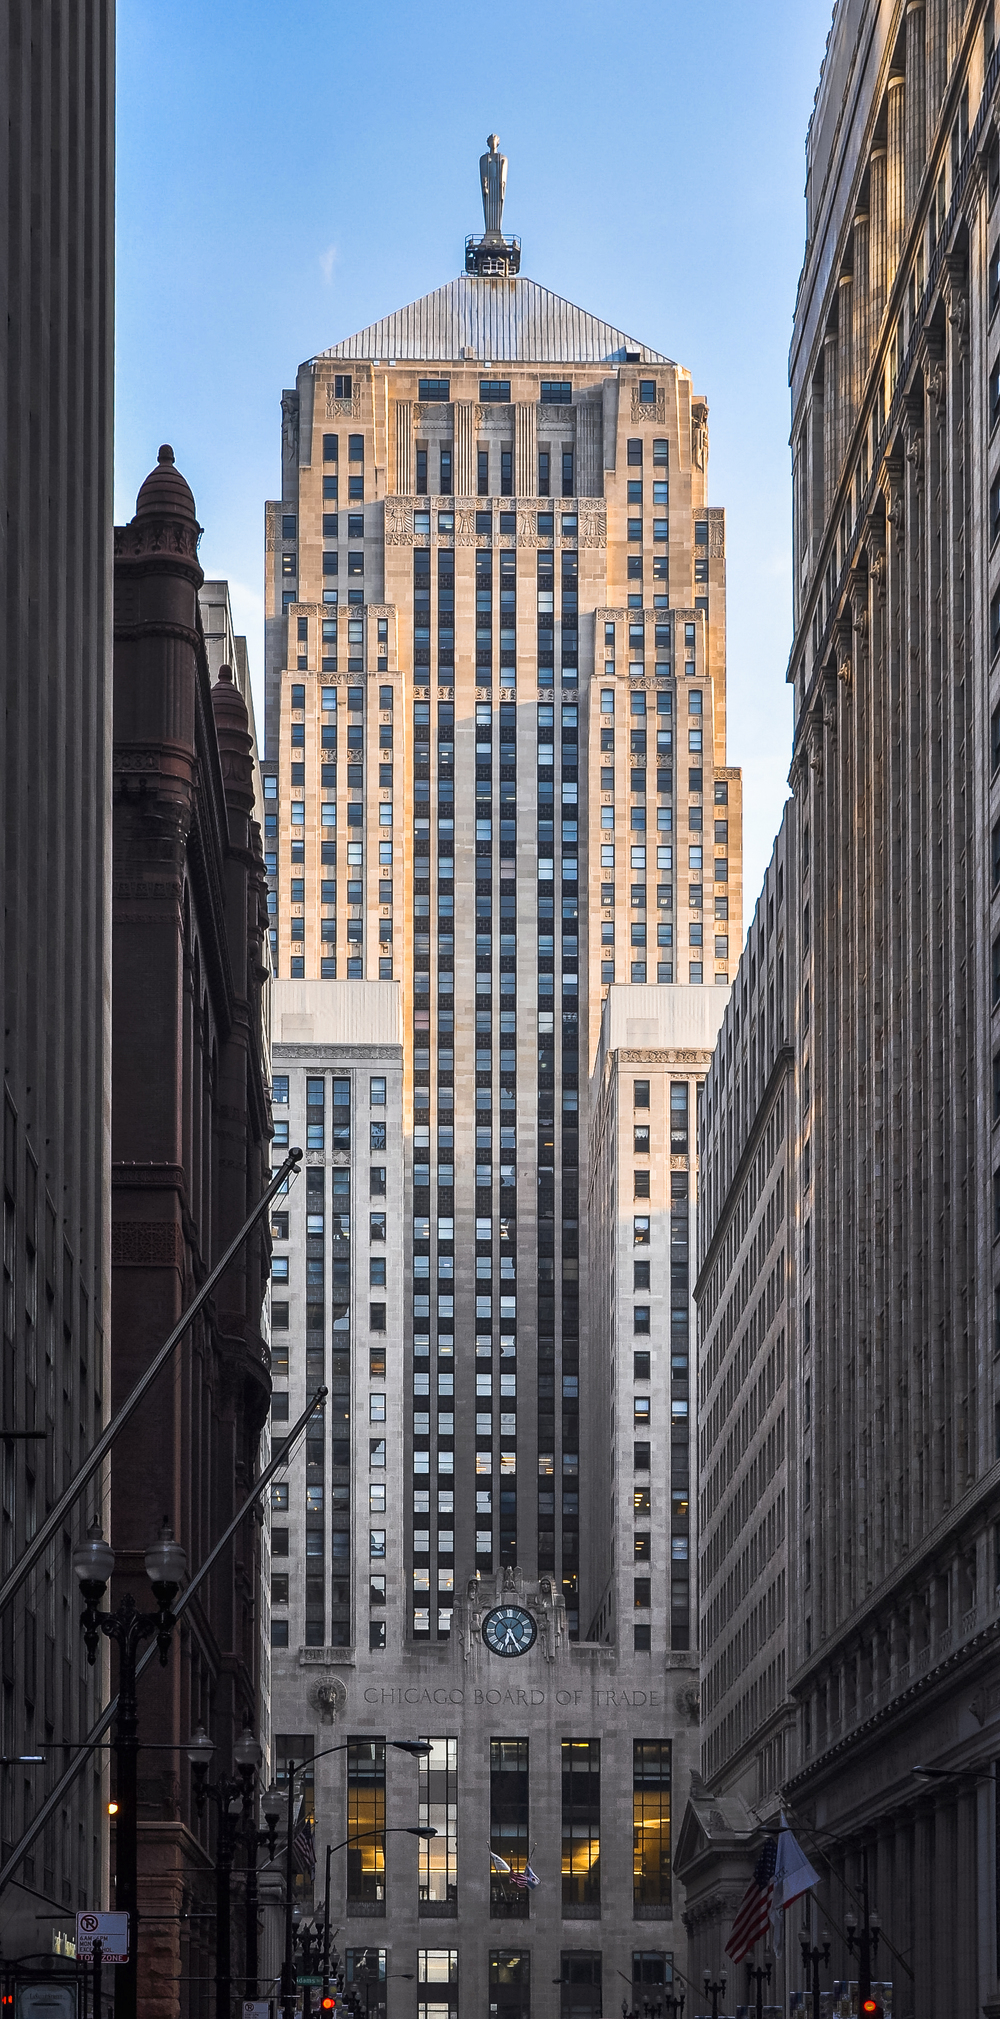 The Chicago Board of Trade, photo by Joe Ravi